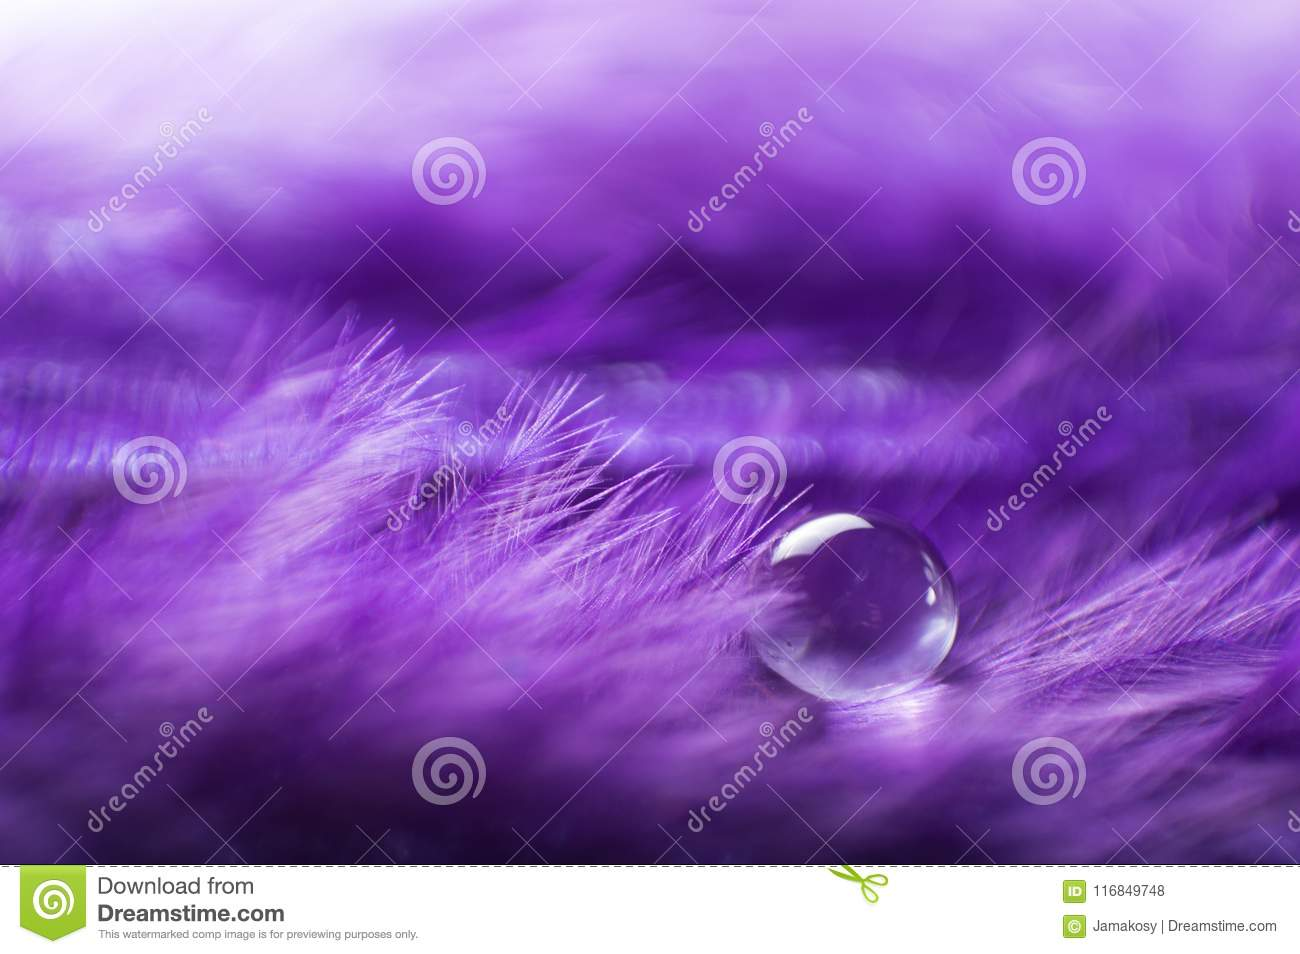 A abstract image of purple color fluffy feathers with one macro water dew drop, beautiful natural background.